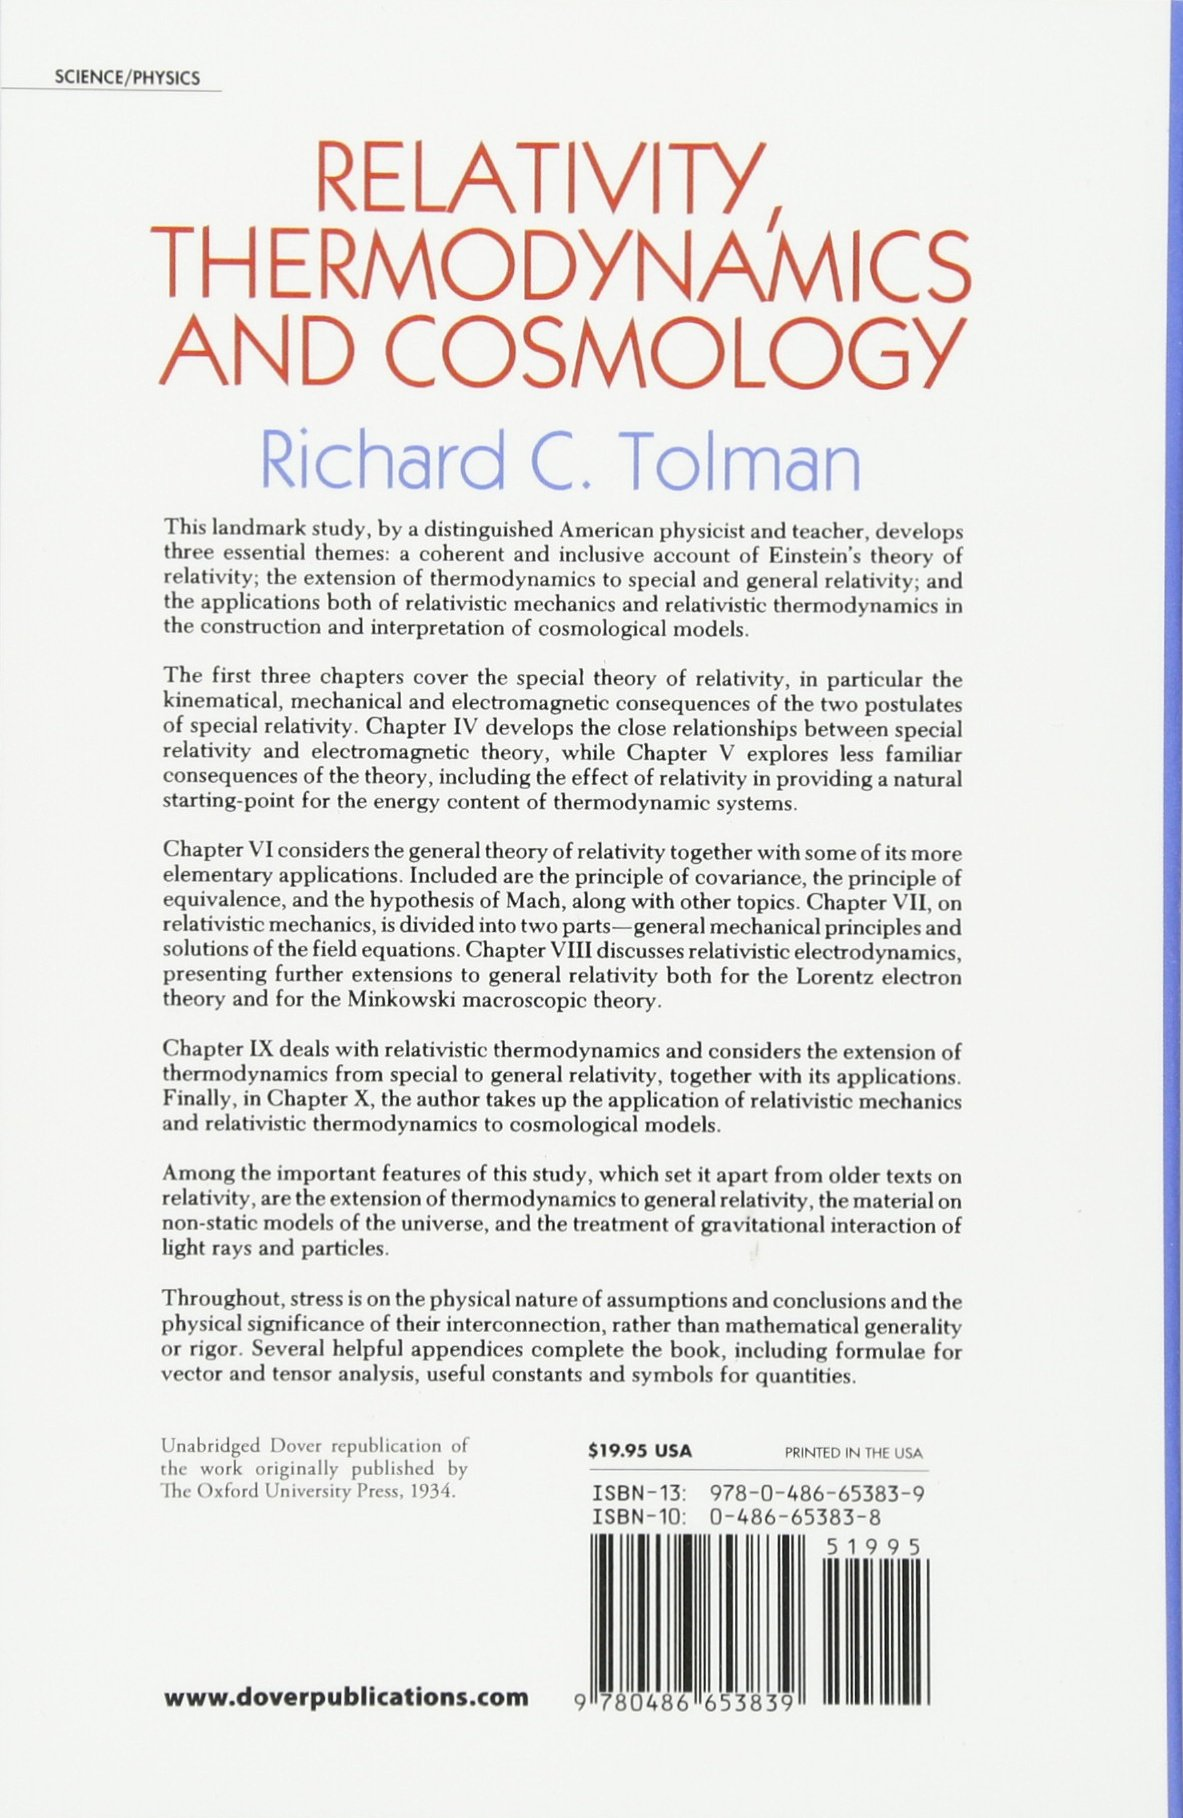 Relativity, Thermodynamics and Cosmology (Dover Books on Physics): Richard  C. Tolman: 0800759653836: Amazon.com: Books